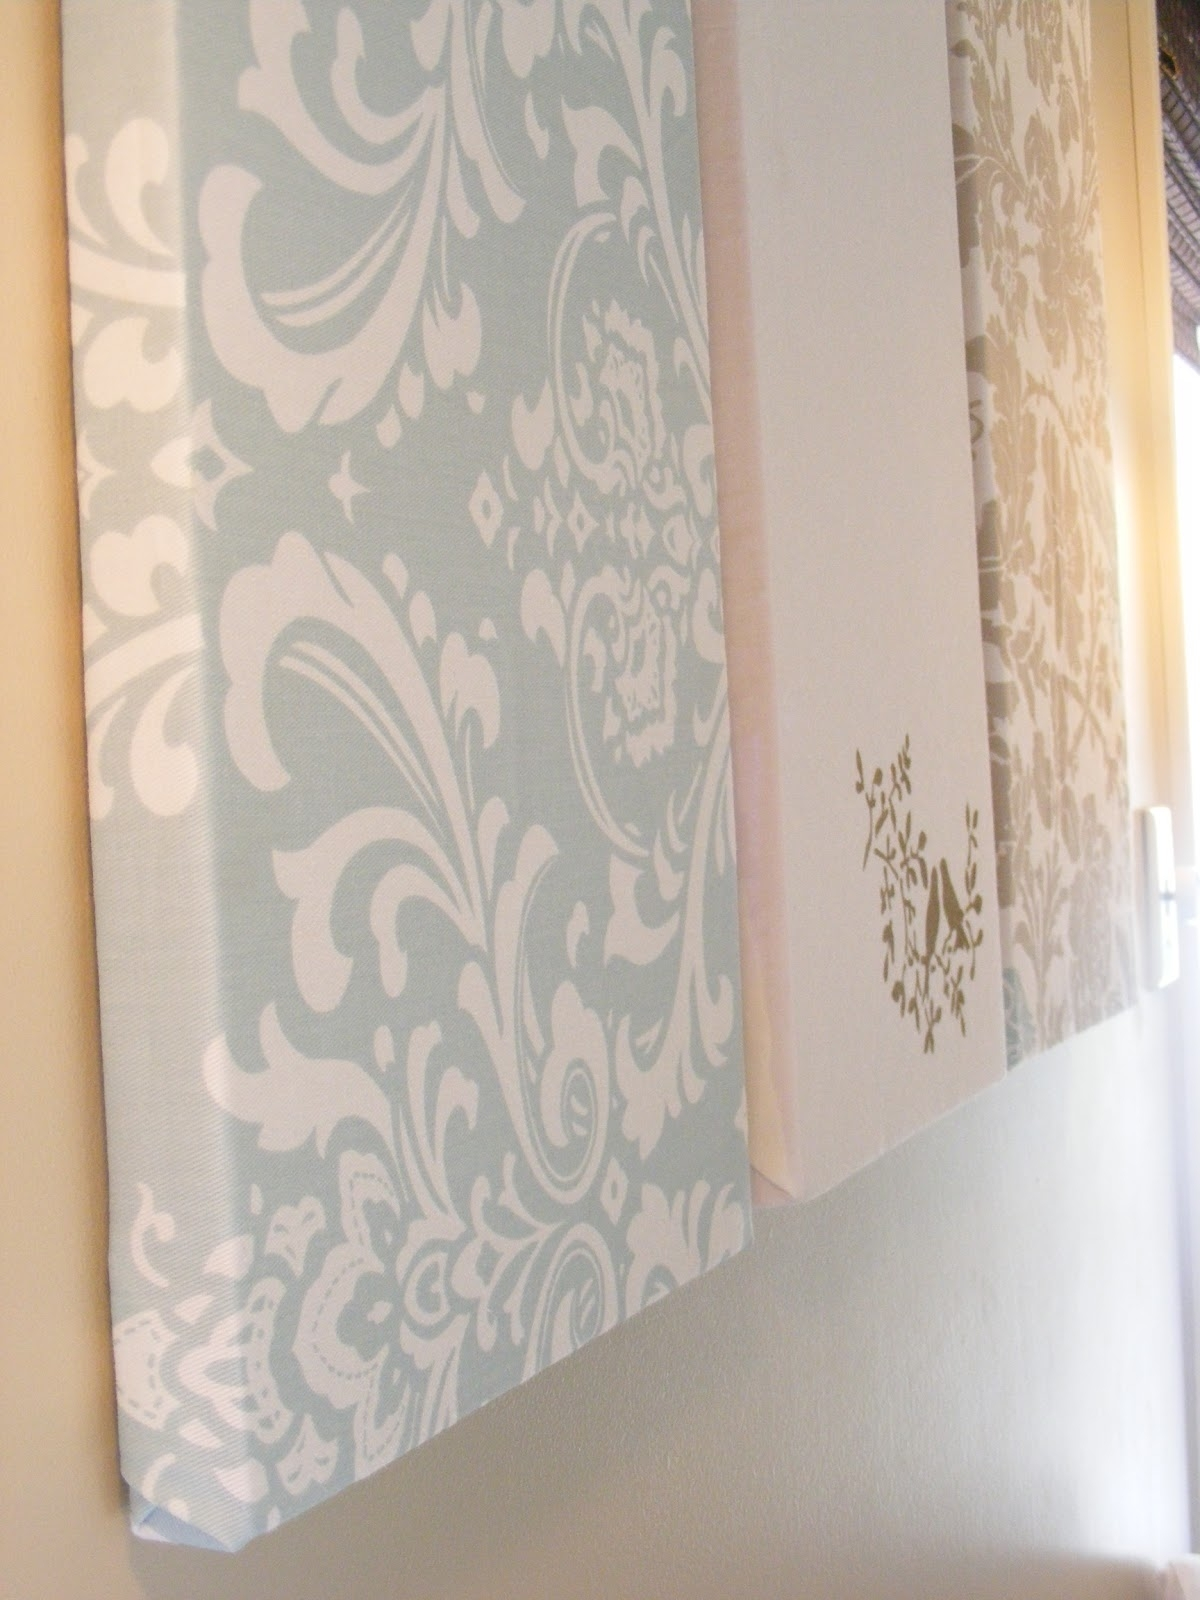 The Complete Guide To Imperfect Homemaking: Simple, Thrifty Diy Art With Recent Fabric For Canvas Wall Art (View 12 of 15)